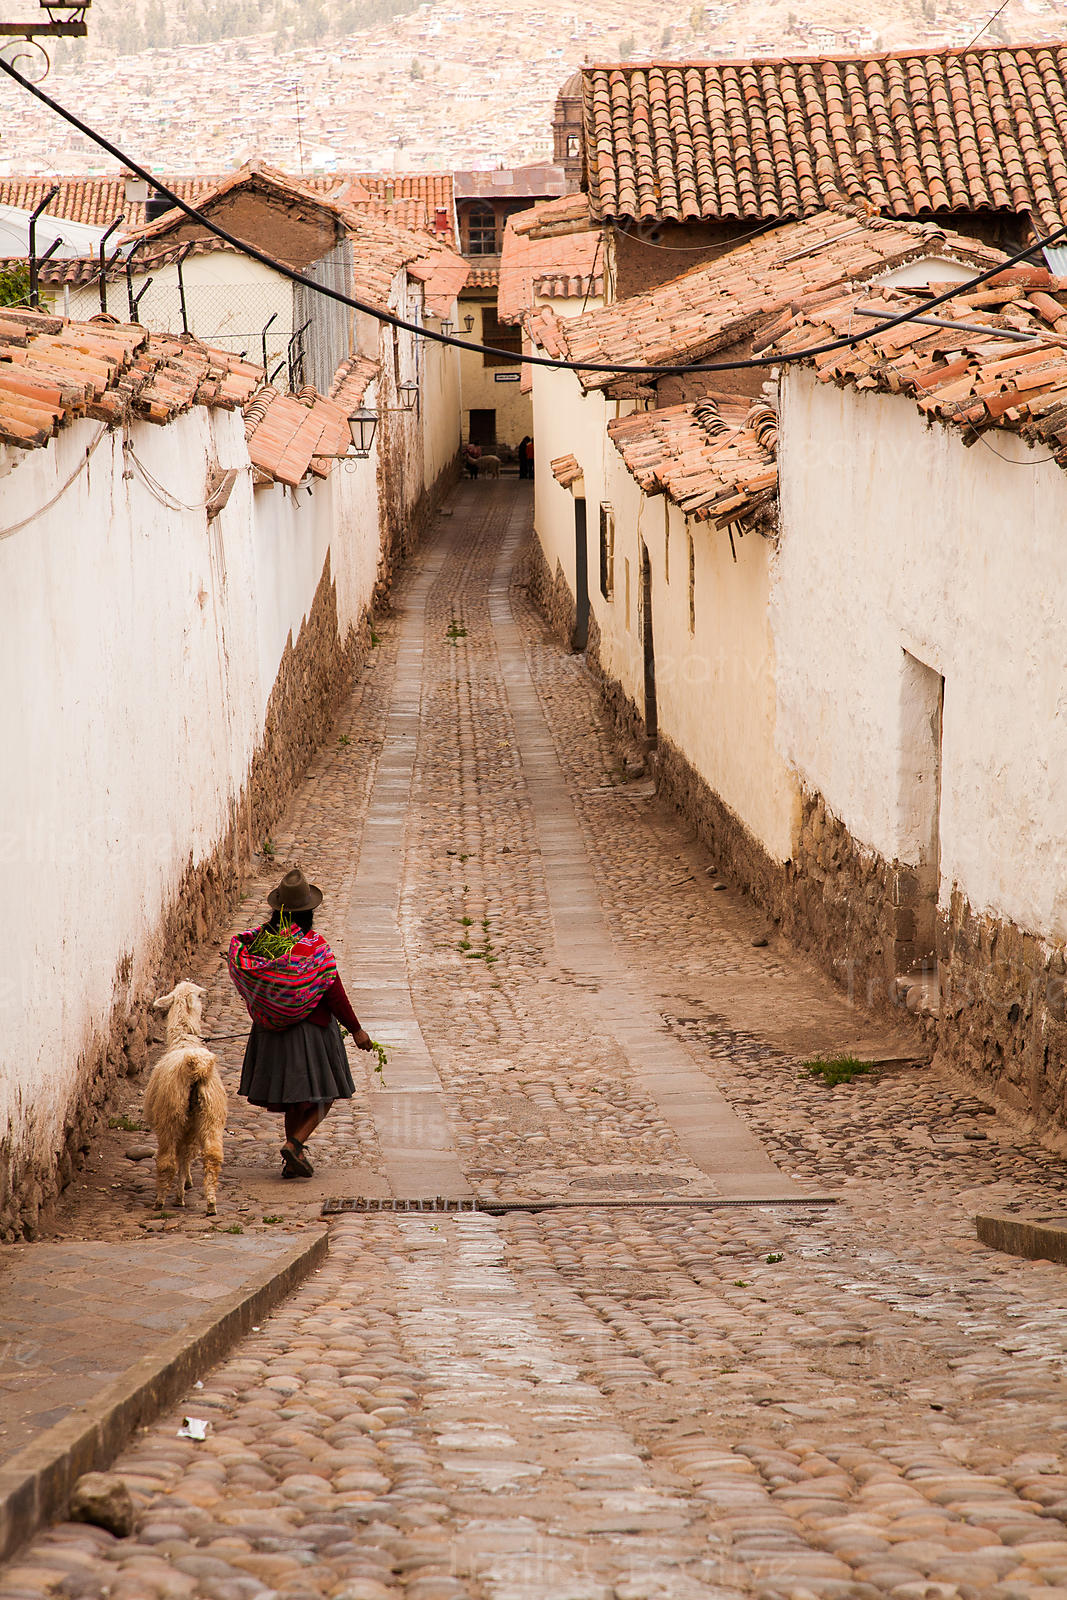 Kechwa woman leading her alpaca down an alley, Cuzco, Peru